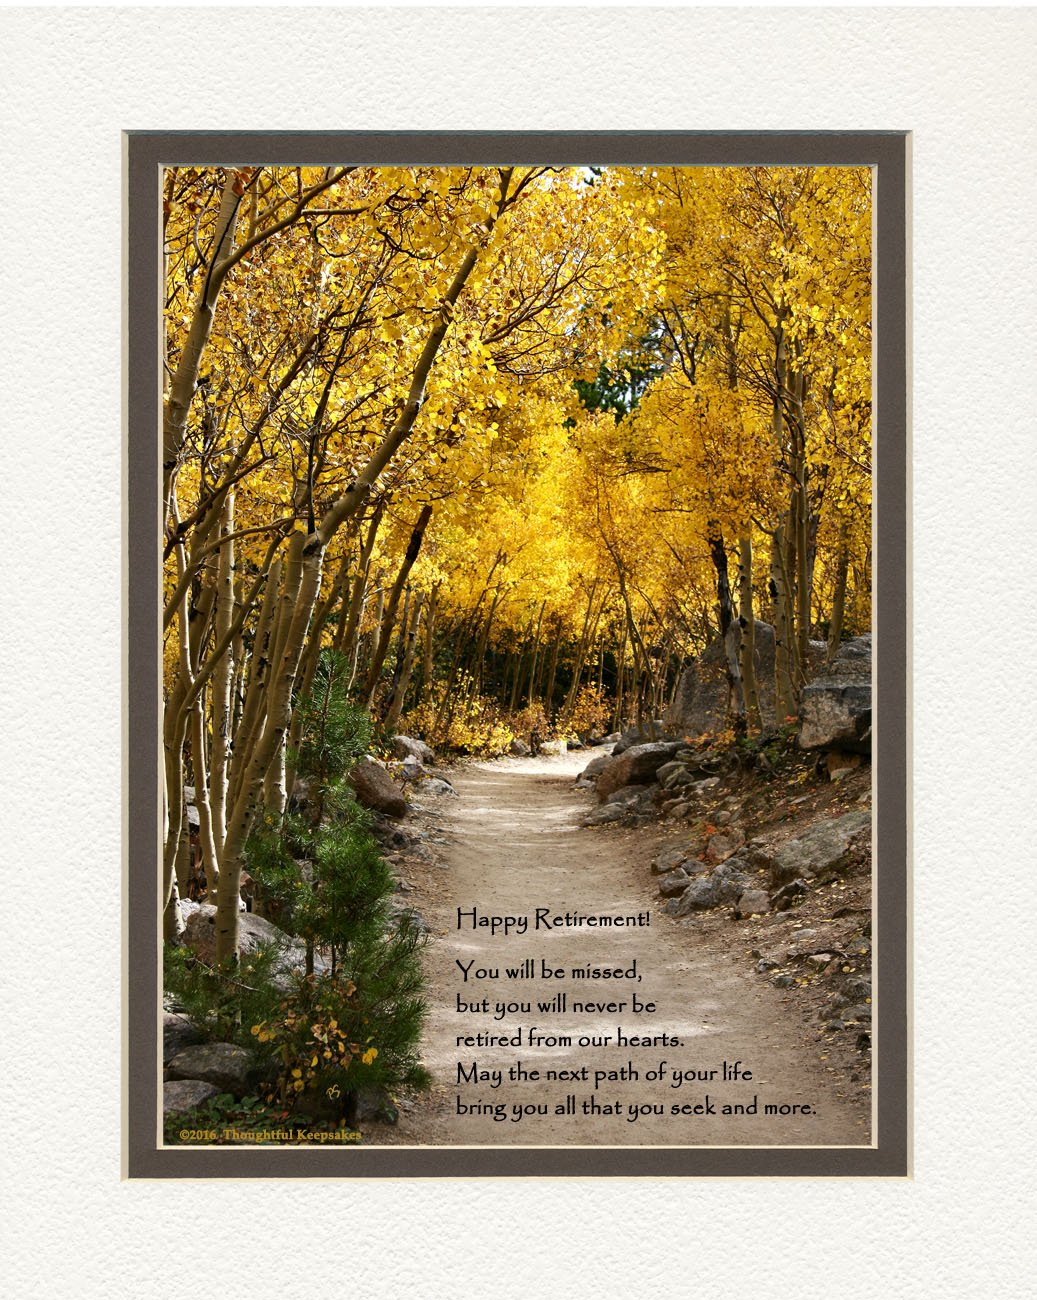 Retirement Gifts. Aspen Path Photo with You Will Be Missed, But You Will Never Be Retired From Our Hearts. Poem, Special Employee Appreciation Gifts from Company or Coworkers.